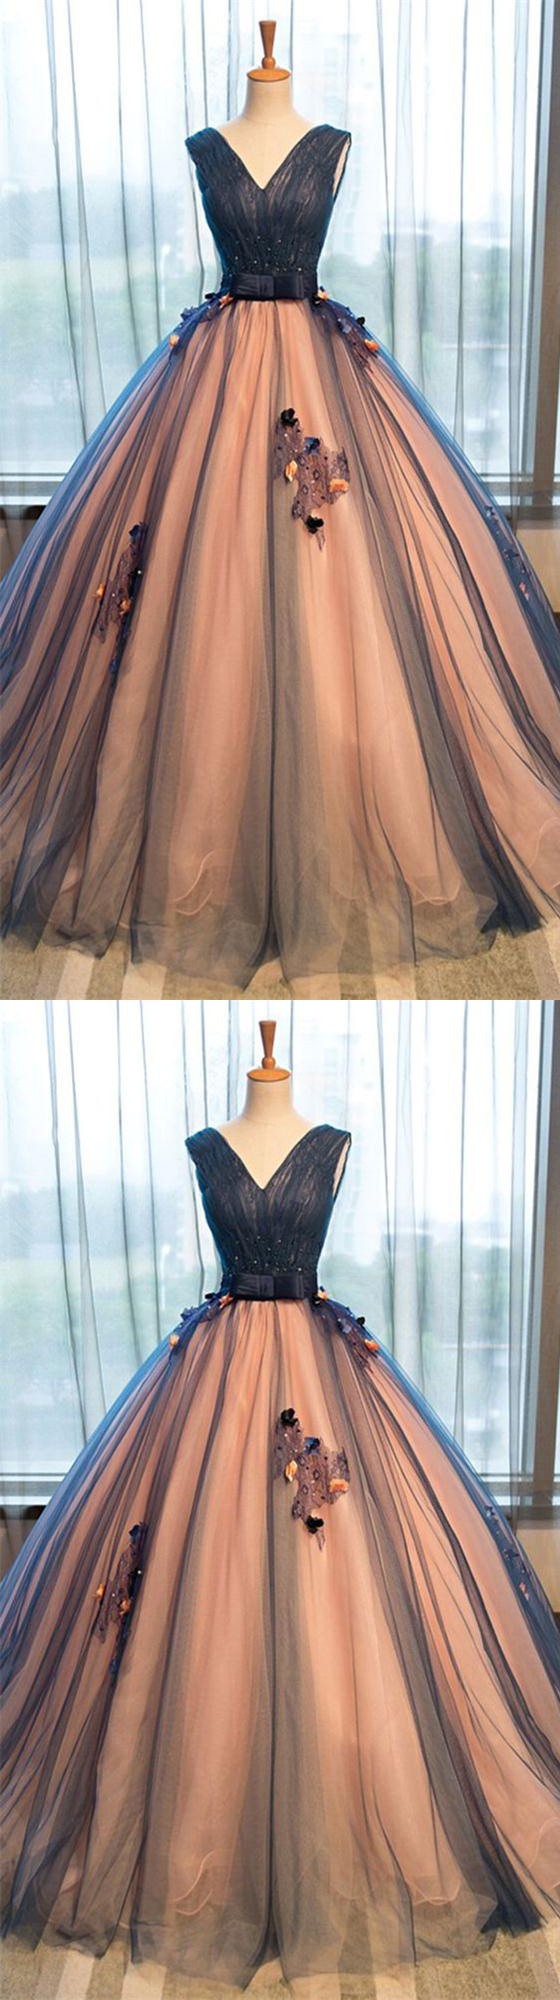 Princess Prom Dresses,Ball Gowns,Prom Dress,Long Prom Dress,Sparkly Prom Dresses,Prom Dresses,Modest Prom Dress,Elegant Prom Dresses,Quinceanera Dresses,Evening Dresses,Prom Dresses For Teens